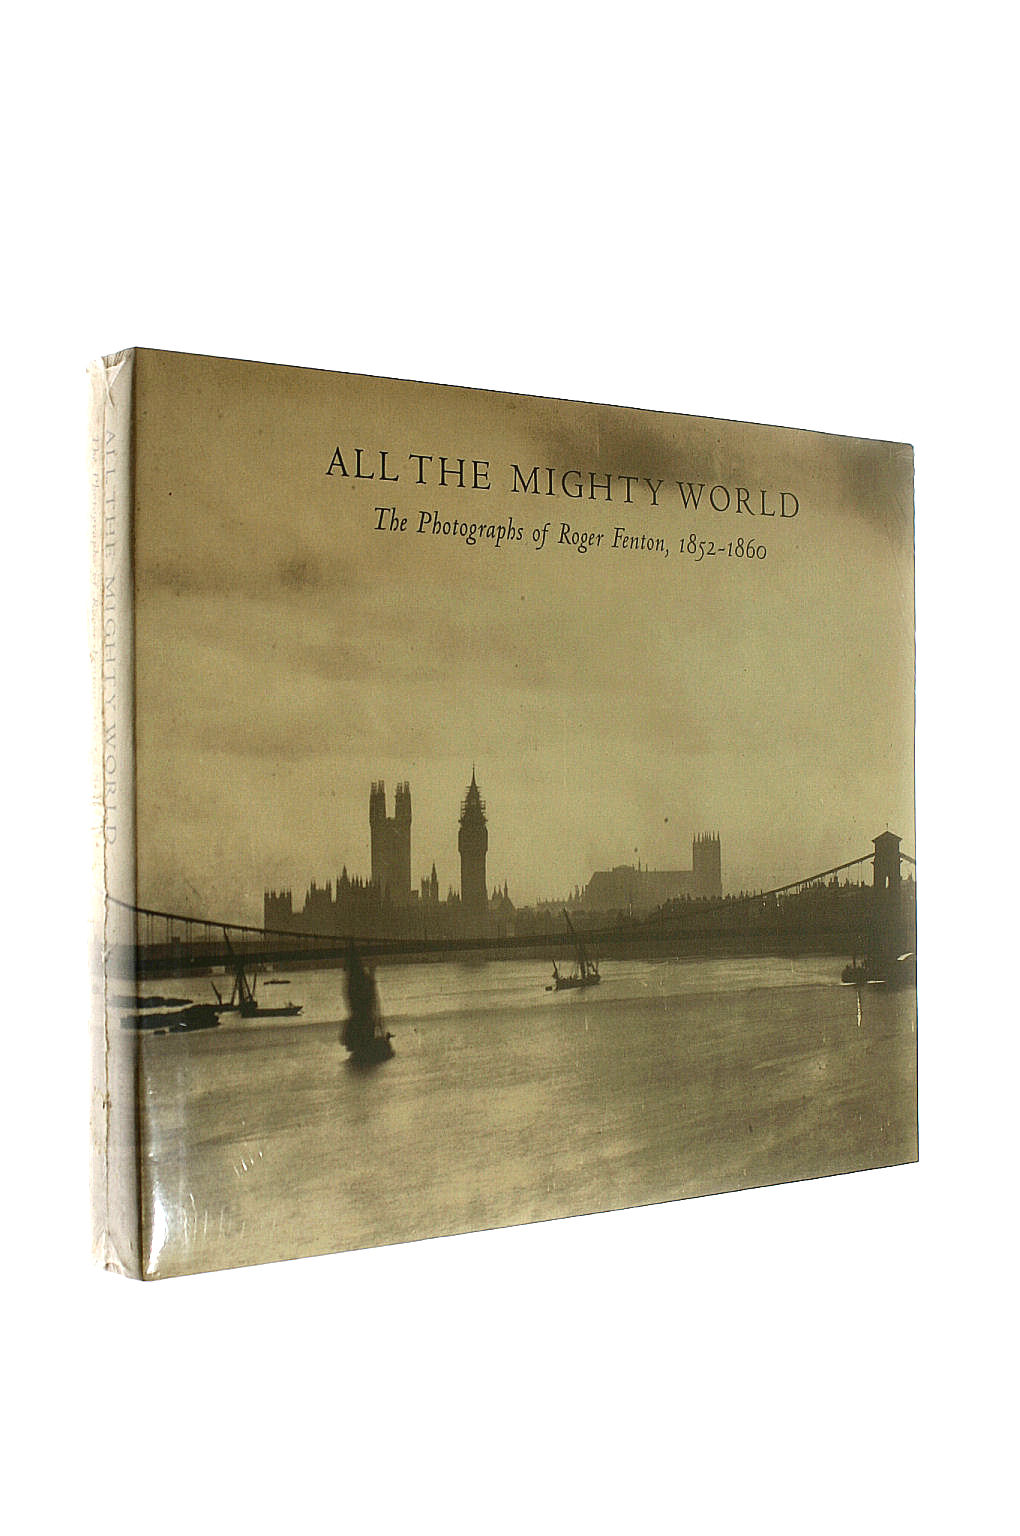 Image for All the Mighty World: The Photographs of Roger Fenton 1852-1860 (Metropolitan Museum of Art)